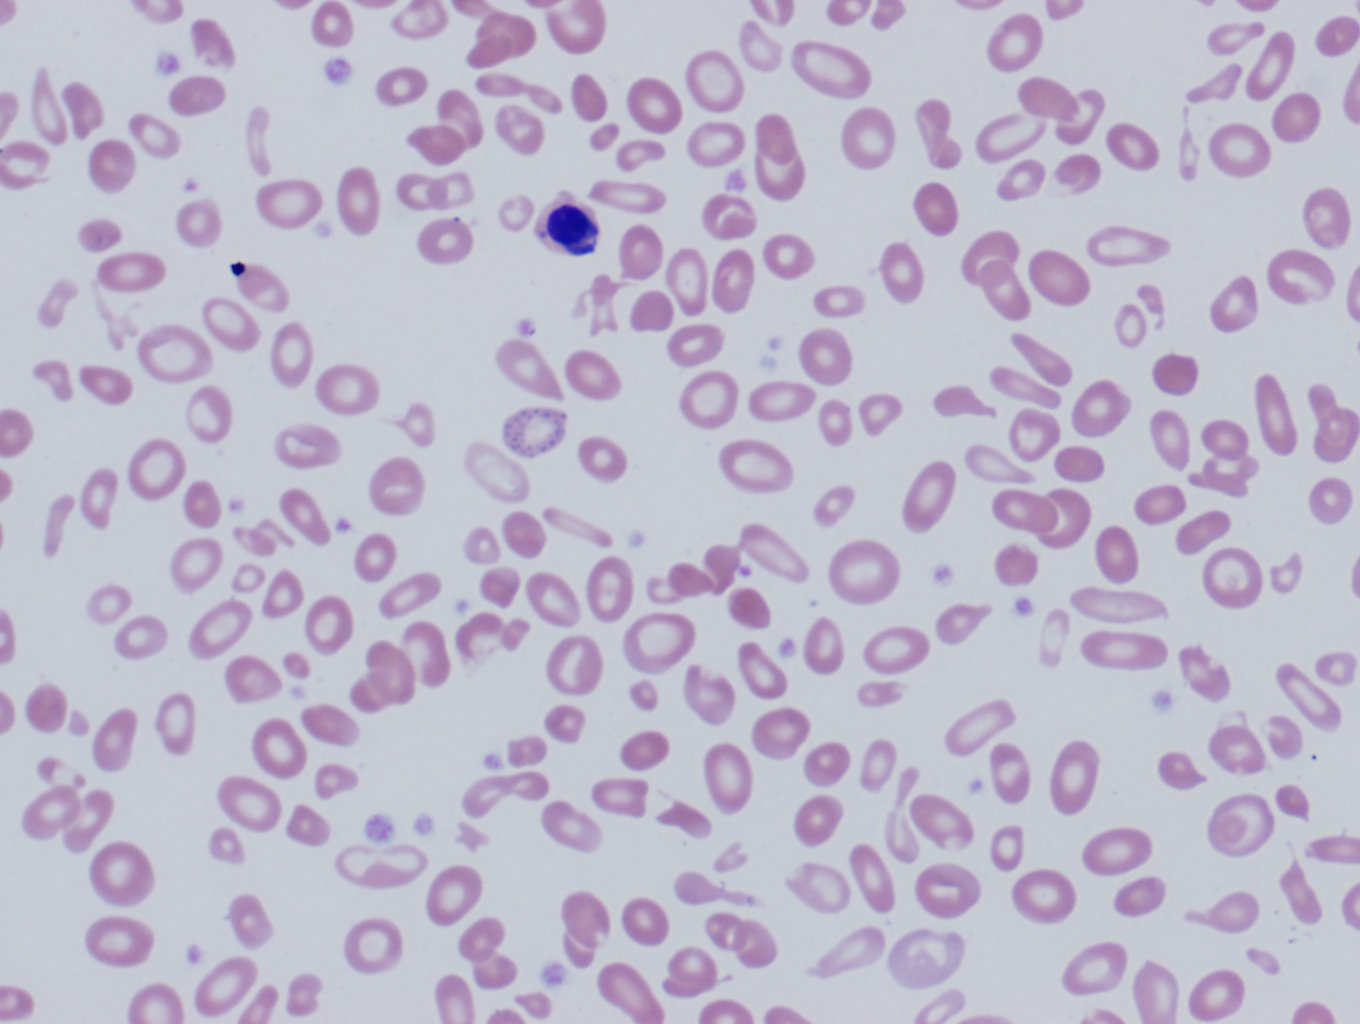 Image 1. Peripheral blood, beta-thalassemia (clinically intermedia) showing anisopoikilocytosis, a nucleated red cell, and basophilic stippling.